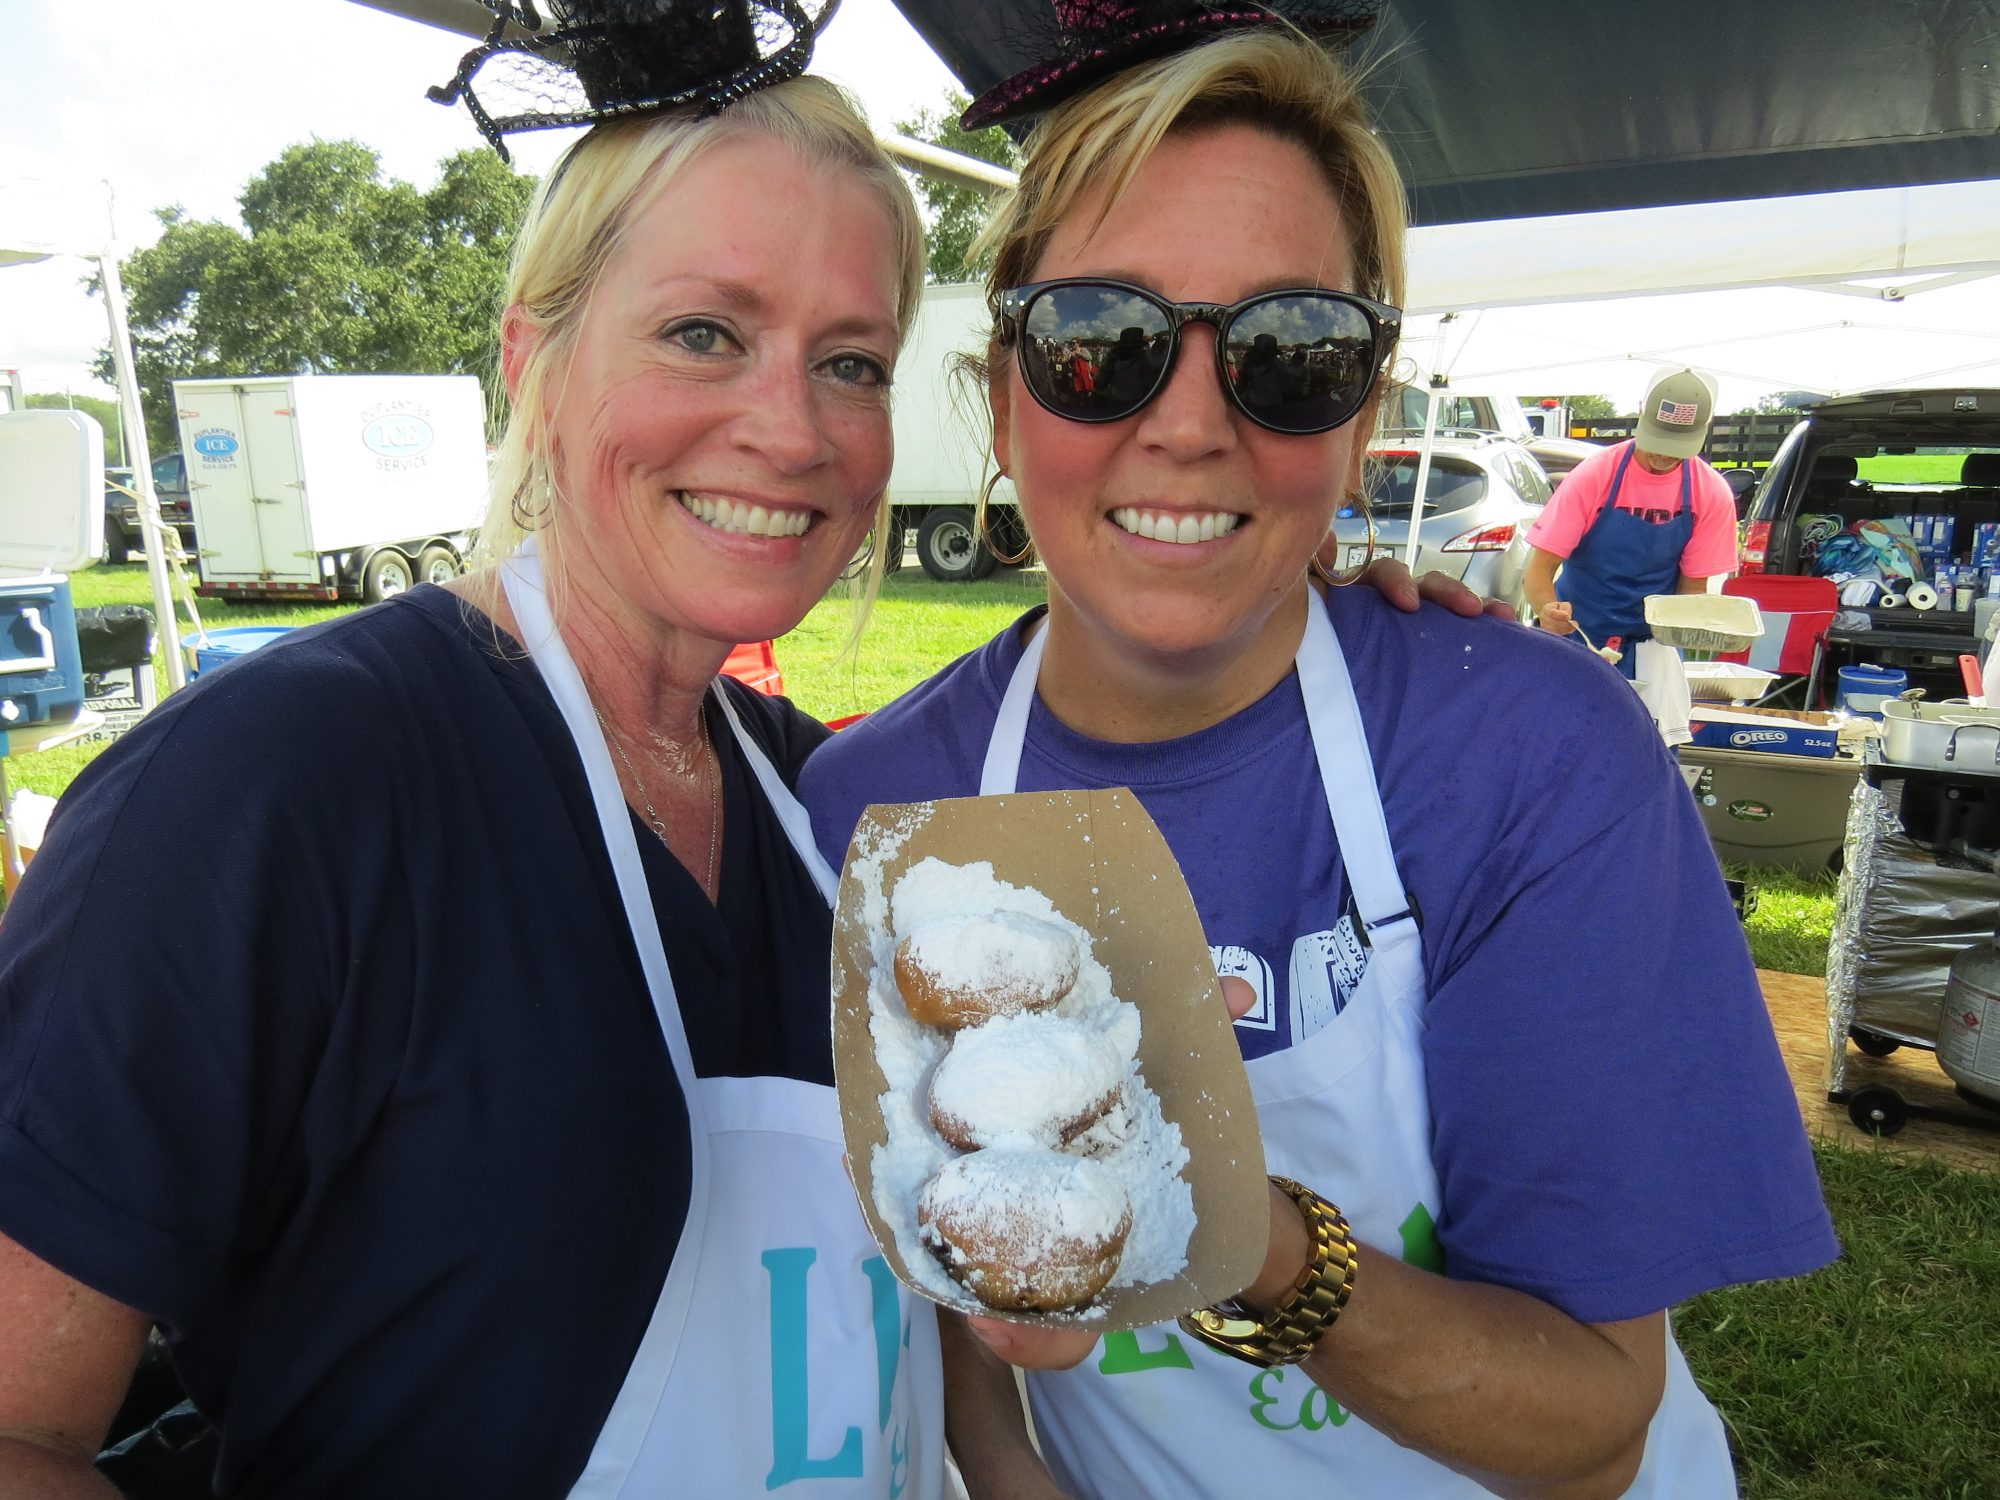 The 4th Annual Beignet Fest Returns to New Orleans This October 5th